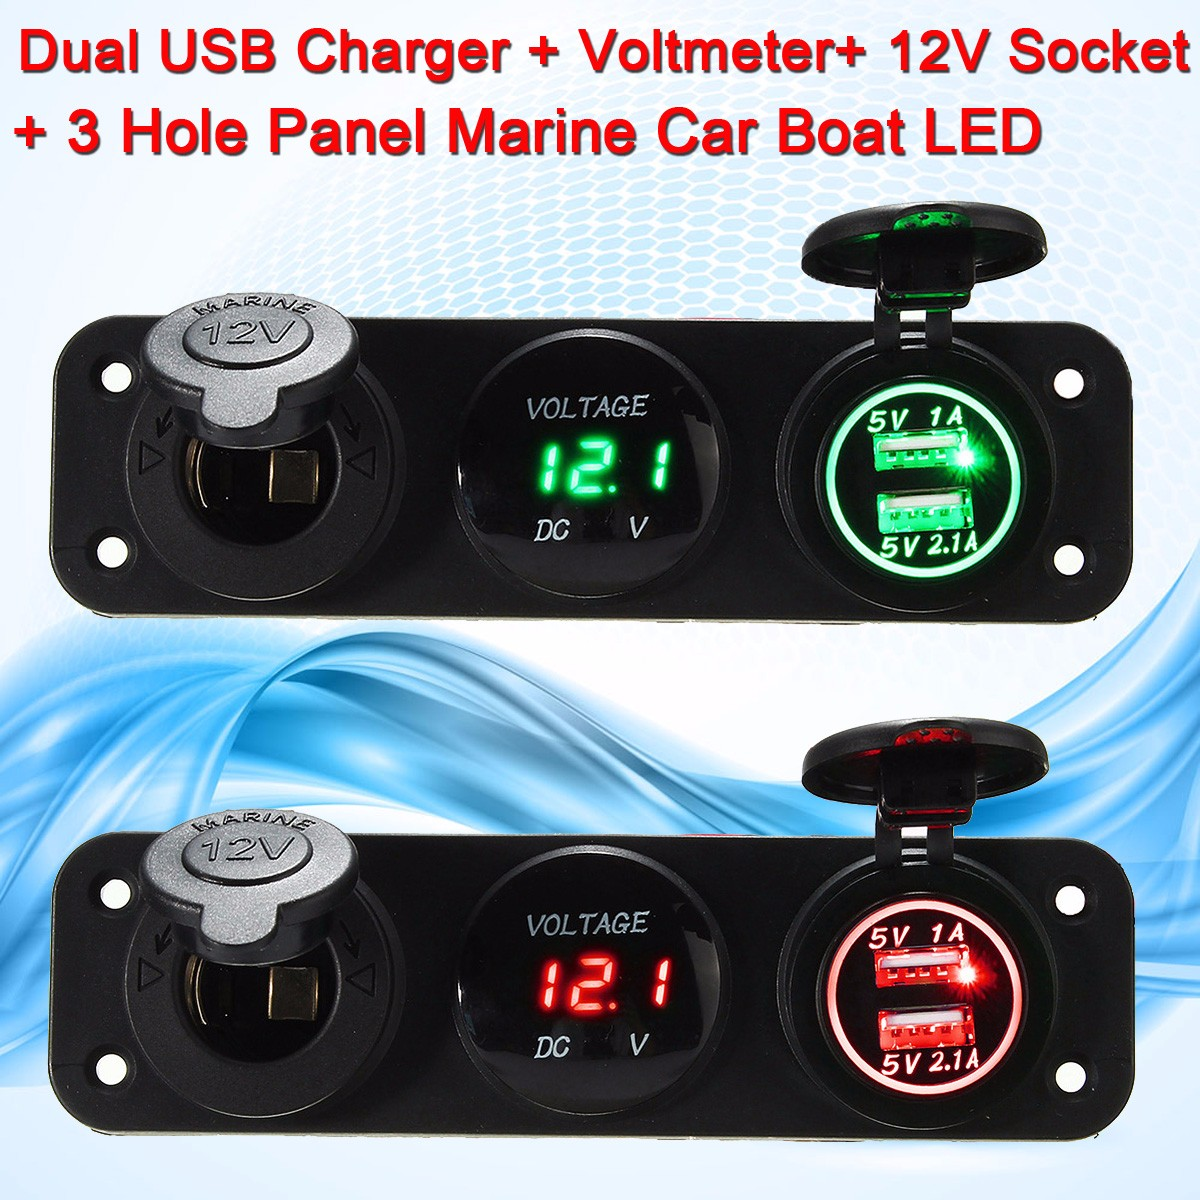 5V 3.1A LED Dual Usb Charger Volt Meterr 12V Socket 3 Hole Panel Marine Car Boat